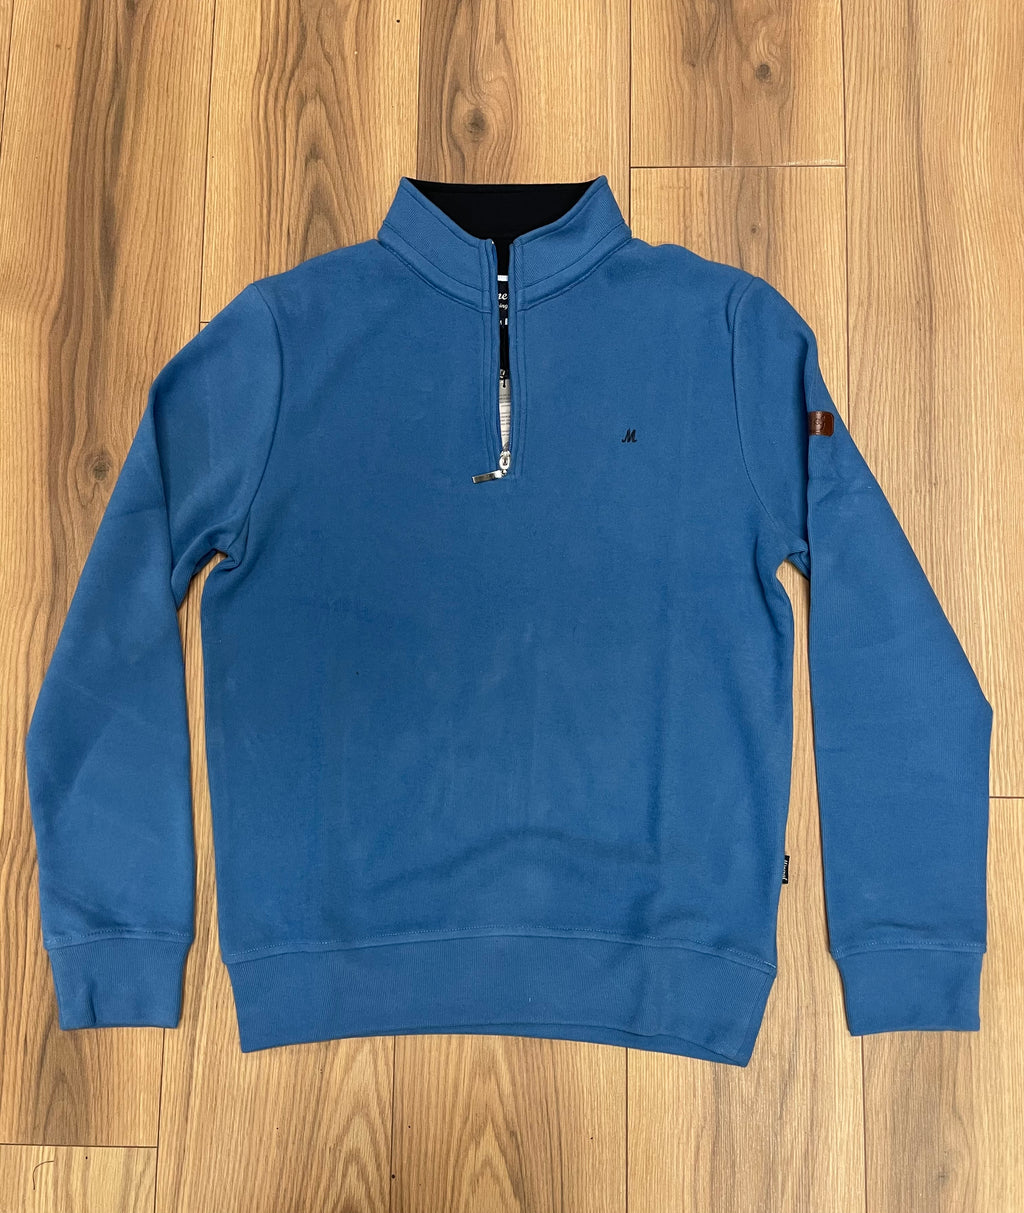 Mineral Kentucky Half Zip Sweatshirt - Blue - JJ Donnelly